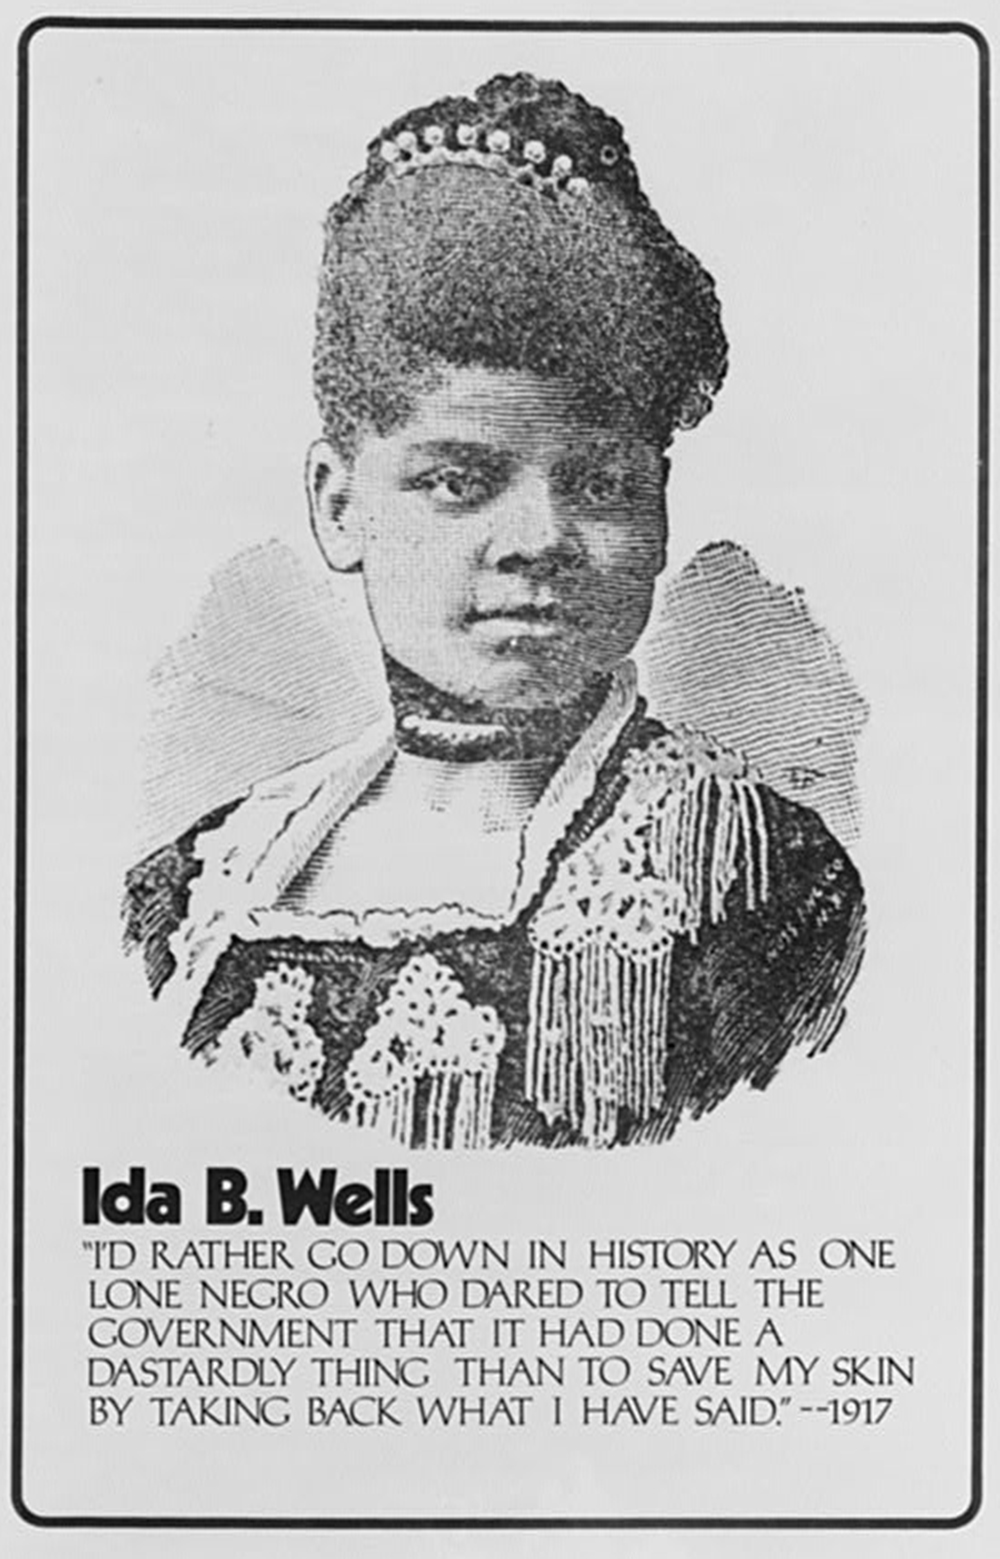 Ida B. Wells, poster produced by Common Cause, c. 1970. Library of Congress, Prints and Photographs Division.